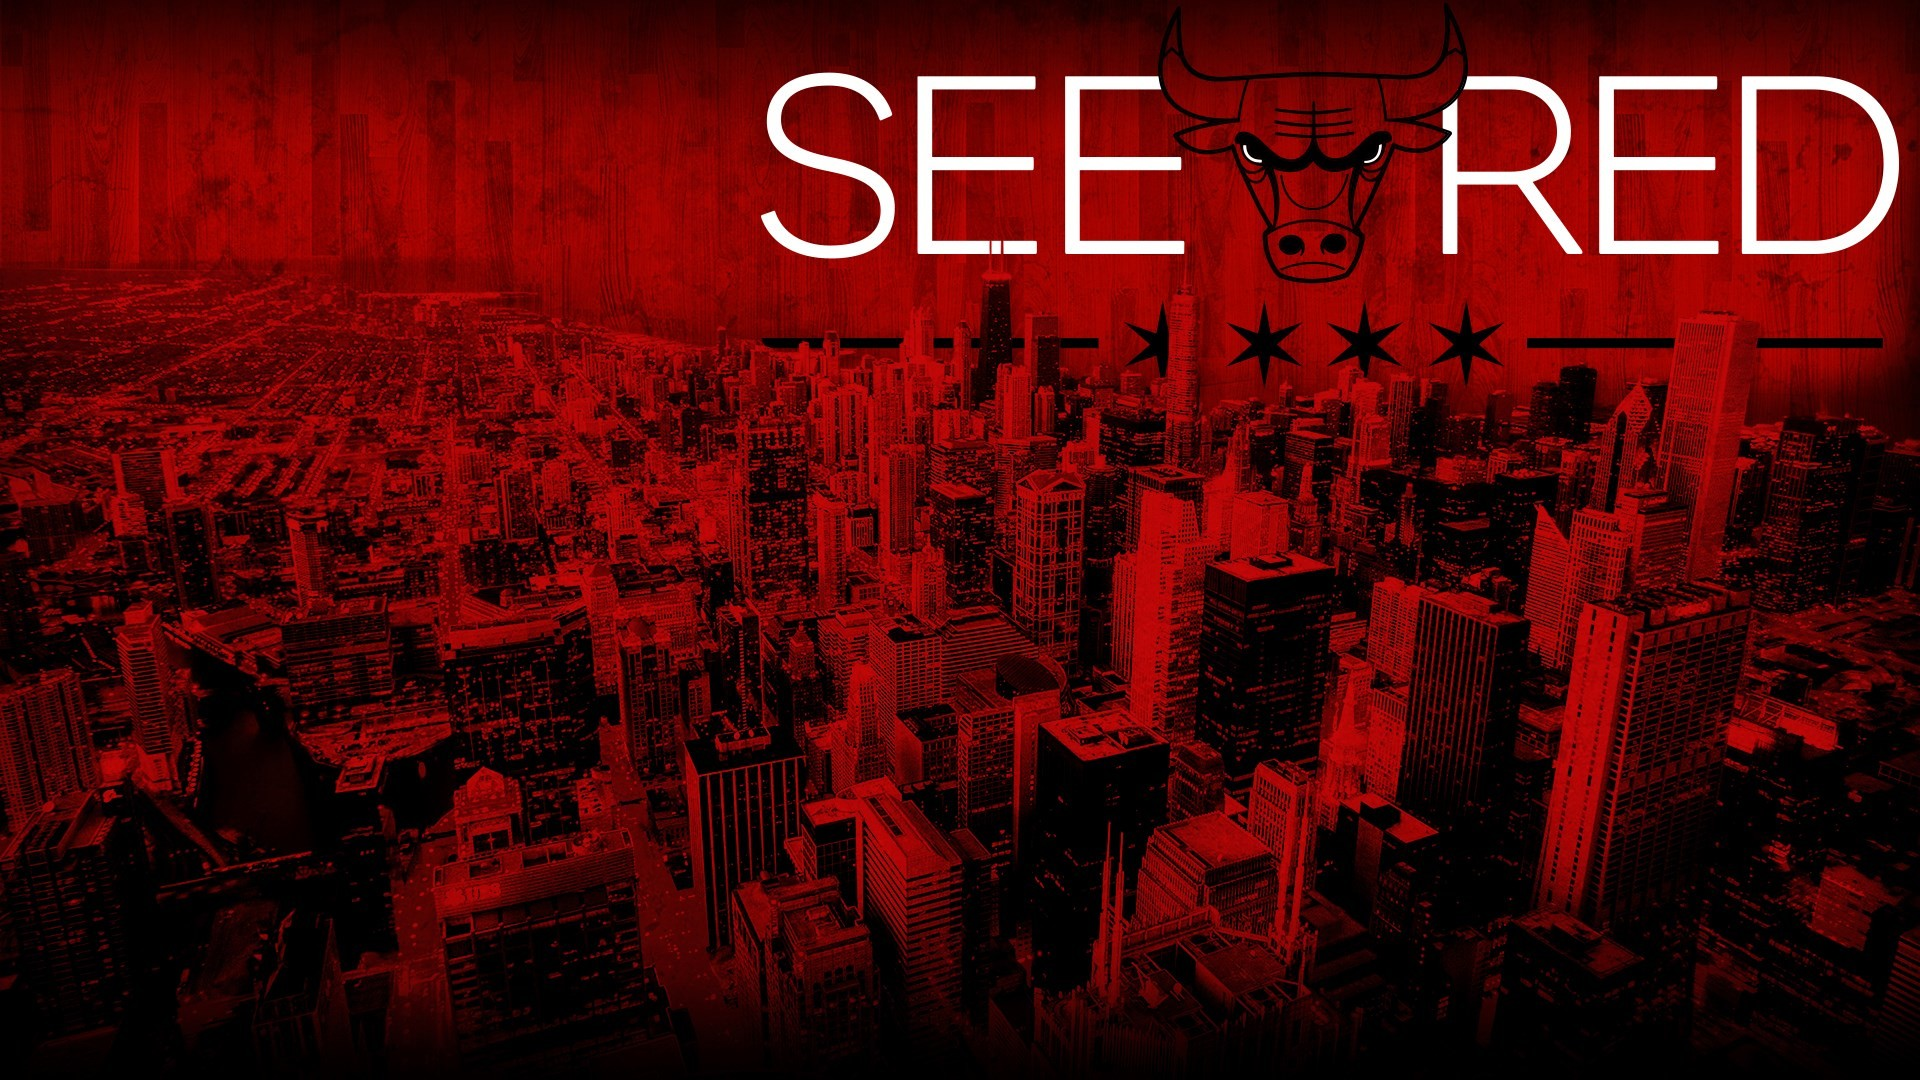 chicago bulls best wallpapers free